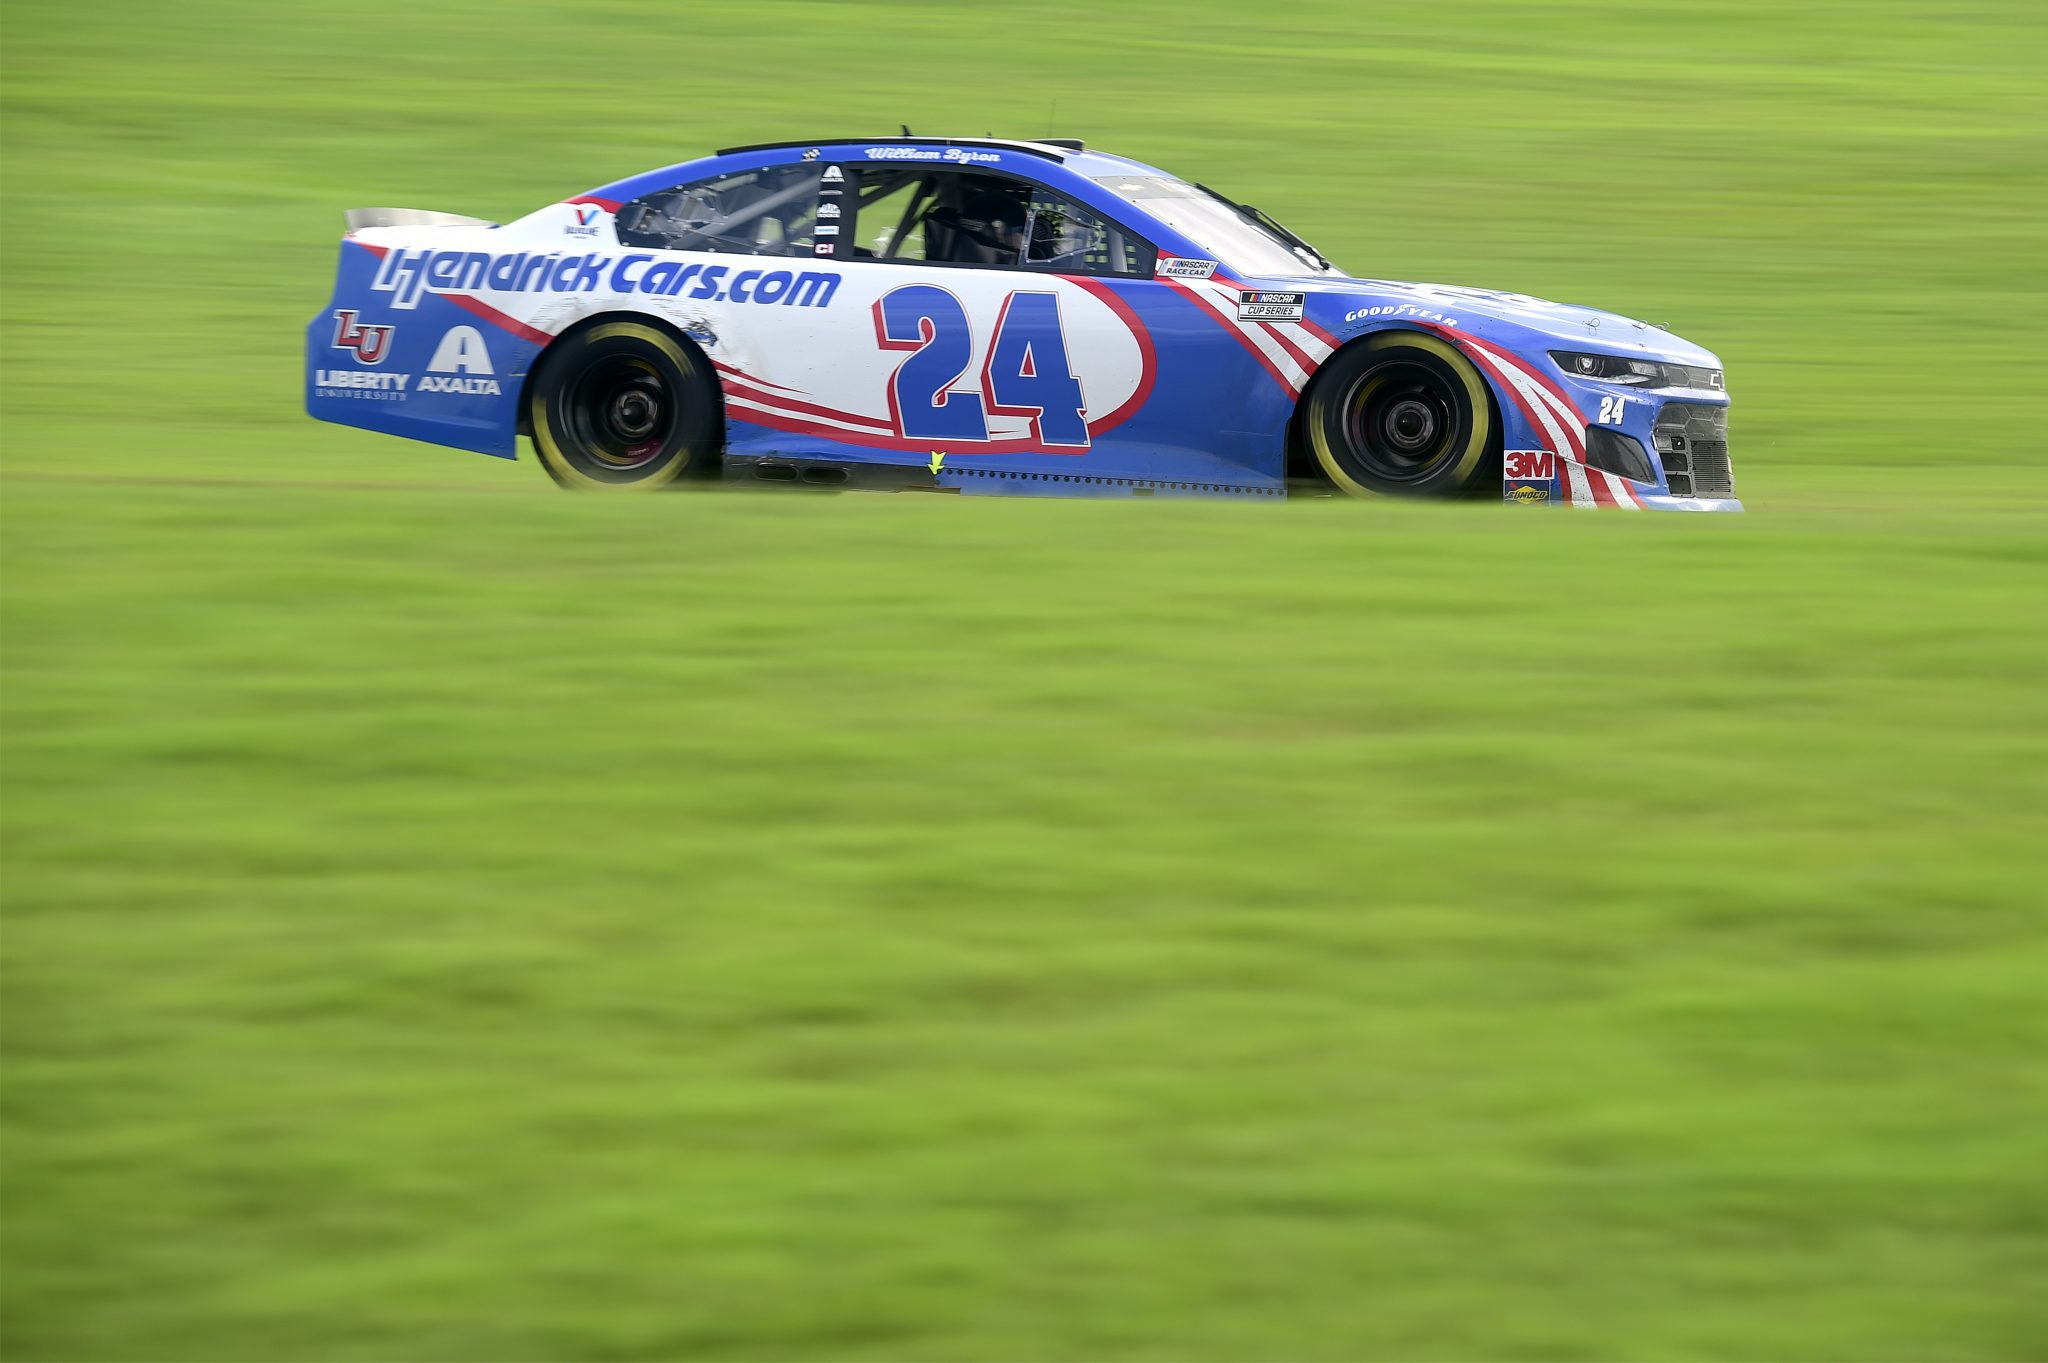 CONCORD, NORTH CAROLINA - OCTOBER 11: William Byron, driver of the #24 Hendrickcars.com Chevrolet, drives during the NASCAR Cup Series Bank of America ROVAL 400 at Charlotte Motor Speedway on October 11, 2020 in Concord, North Carolina. (Photo by Jared C. Tilton/Getty Images) | Getty Images